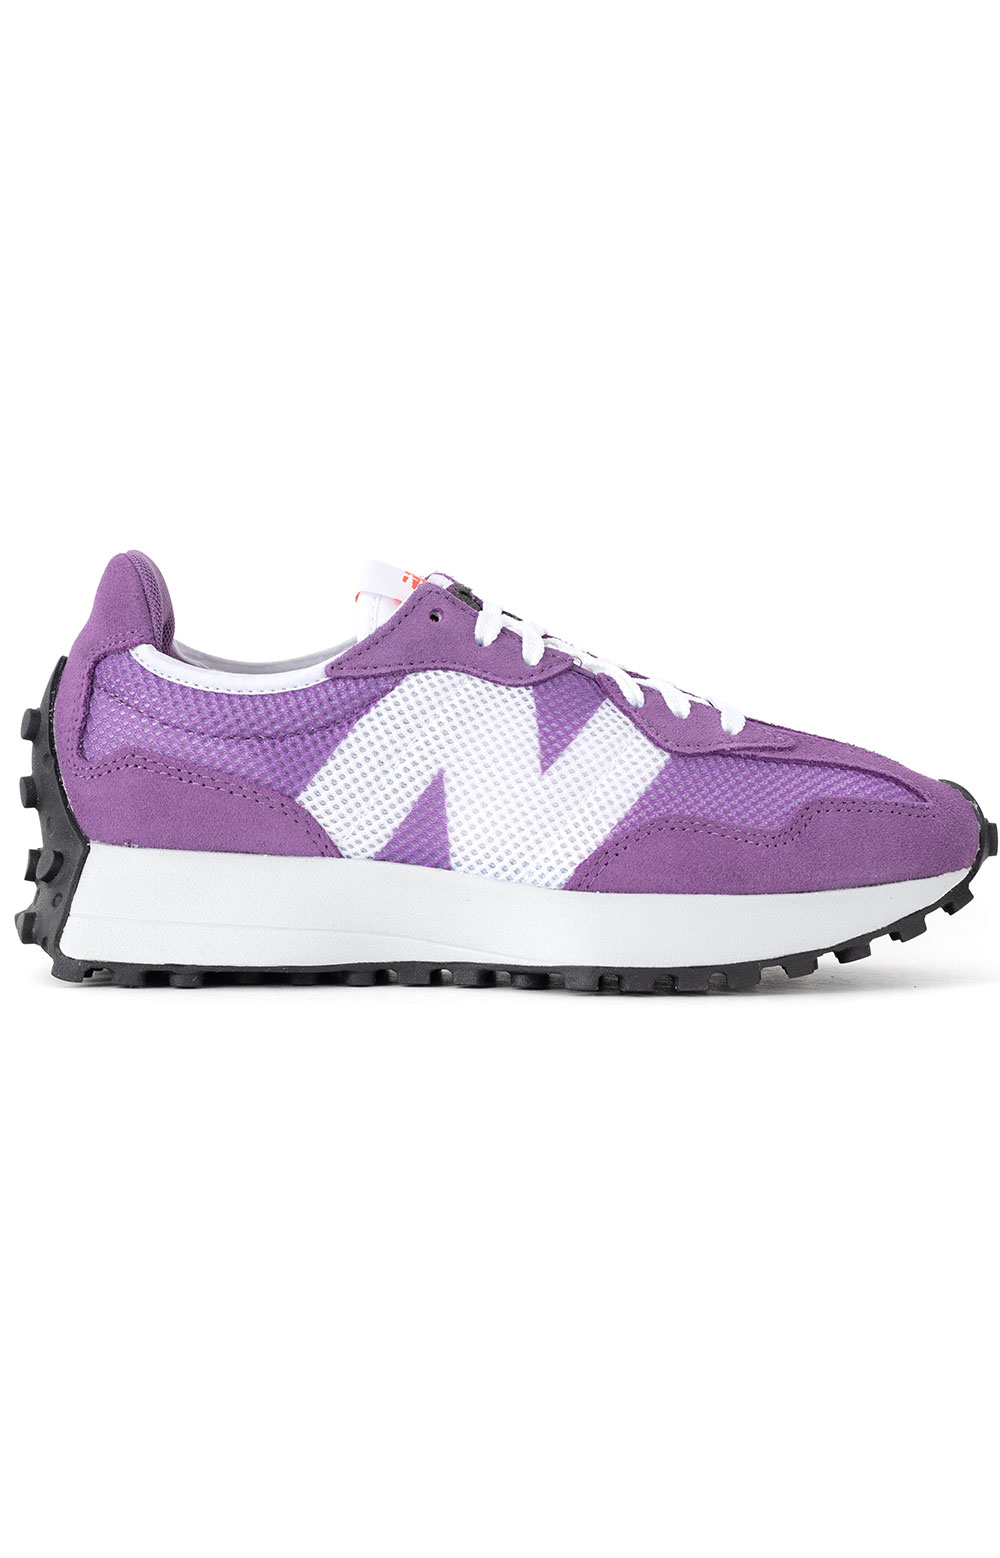 (WS327HE) 327 Shoes - Virtual Violet/Ghost Pepper